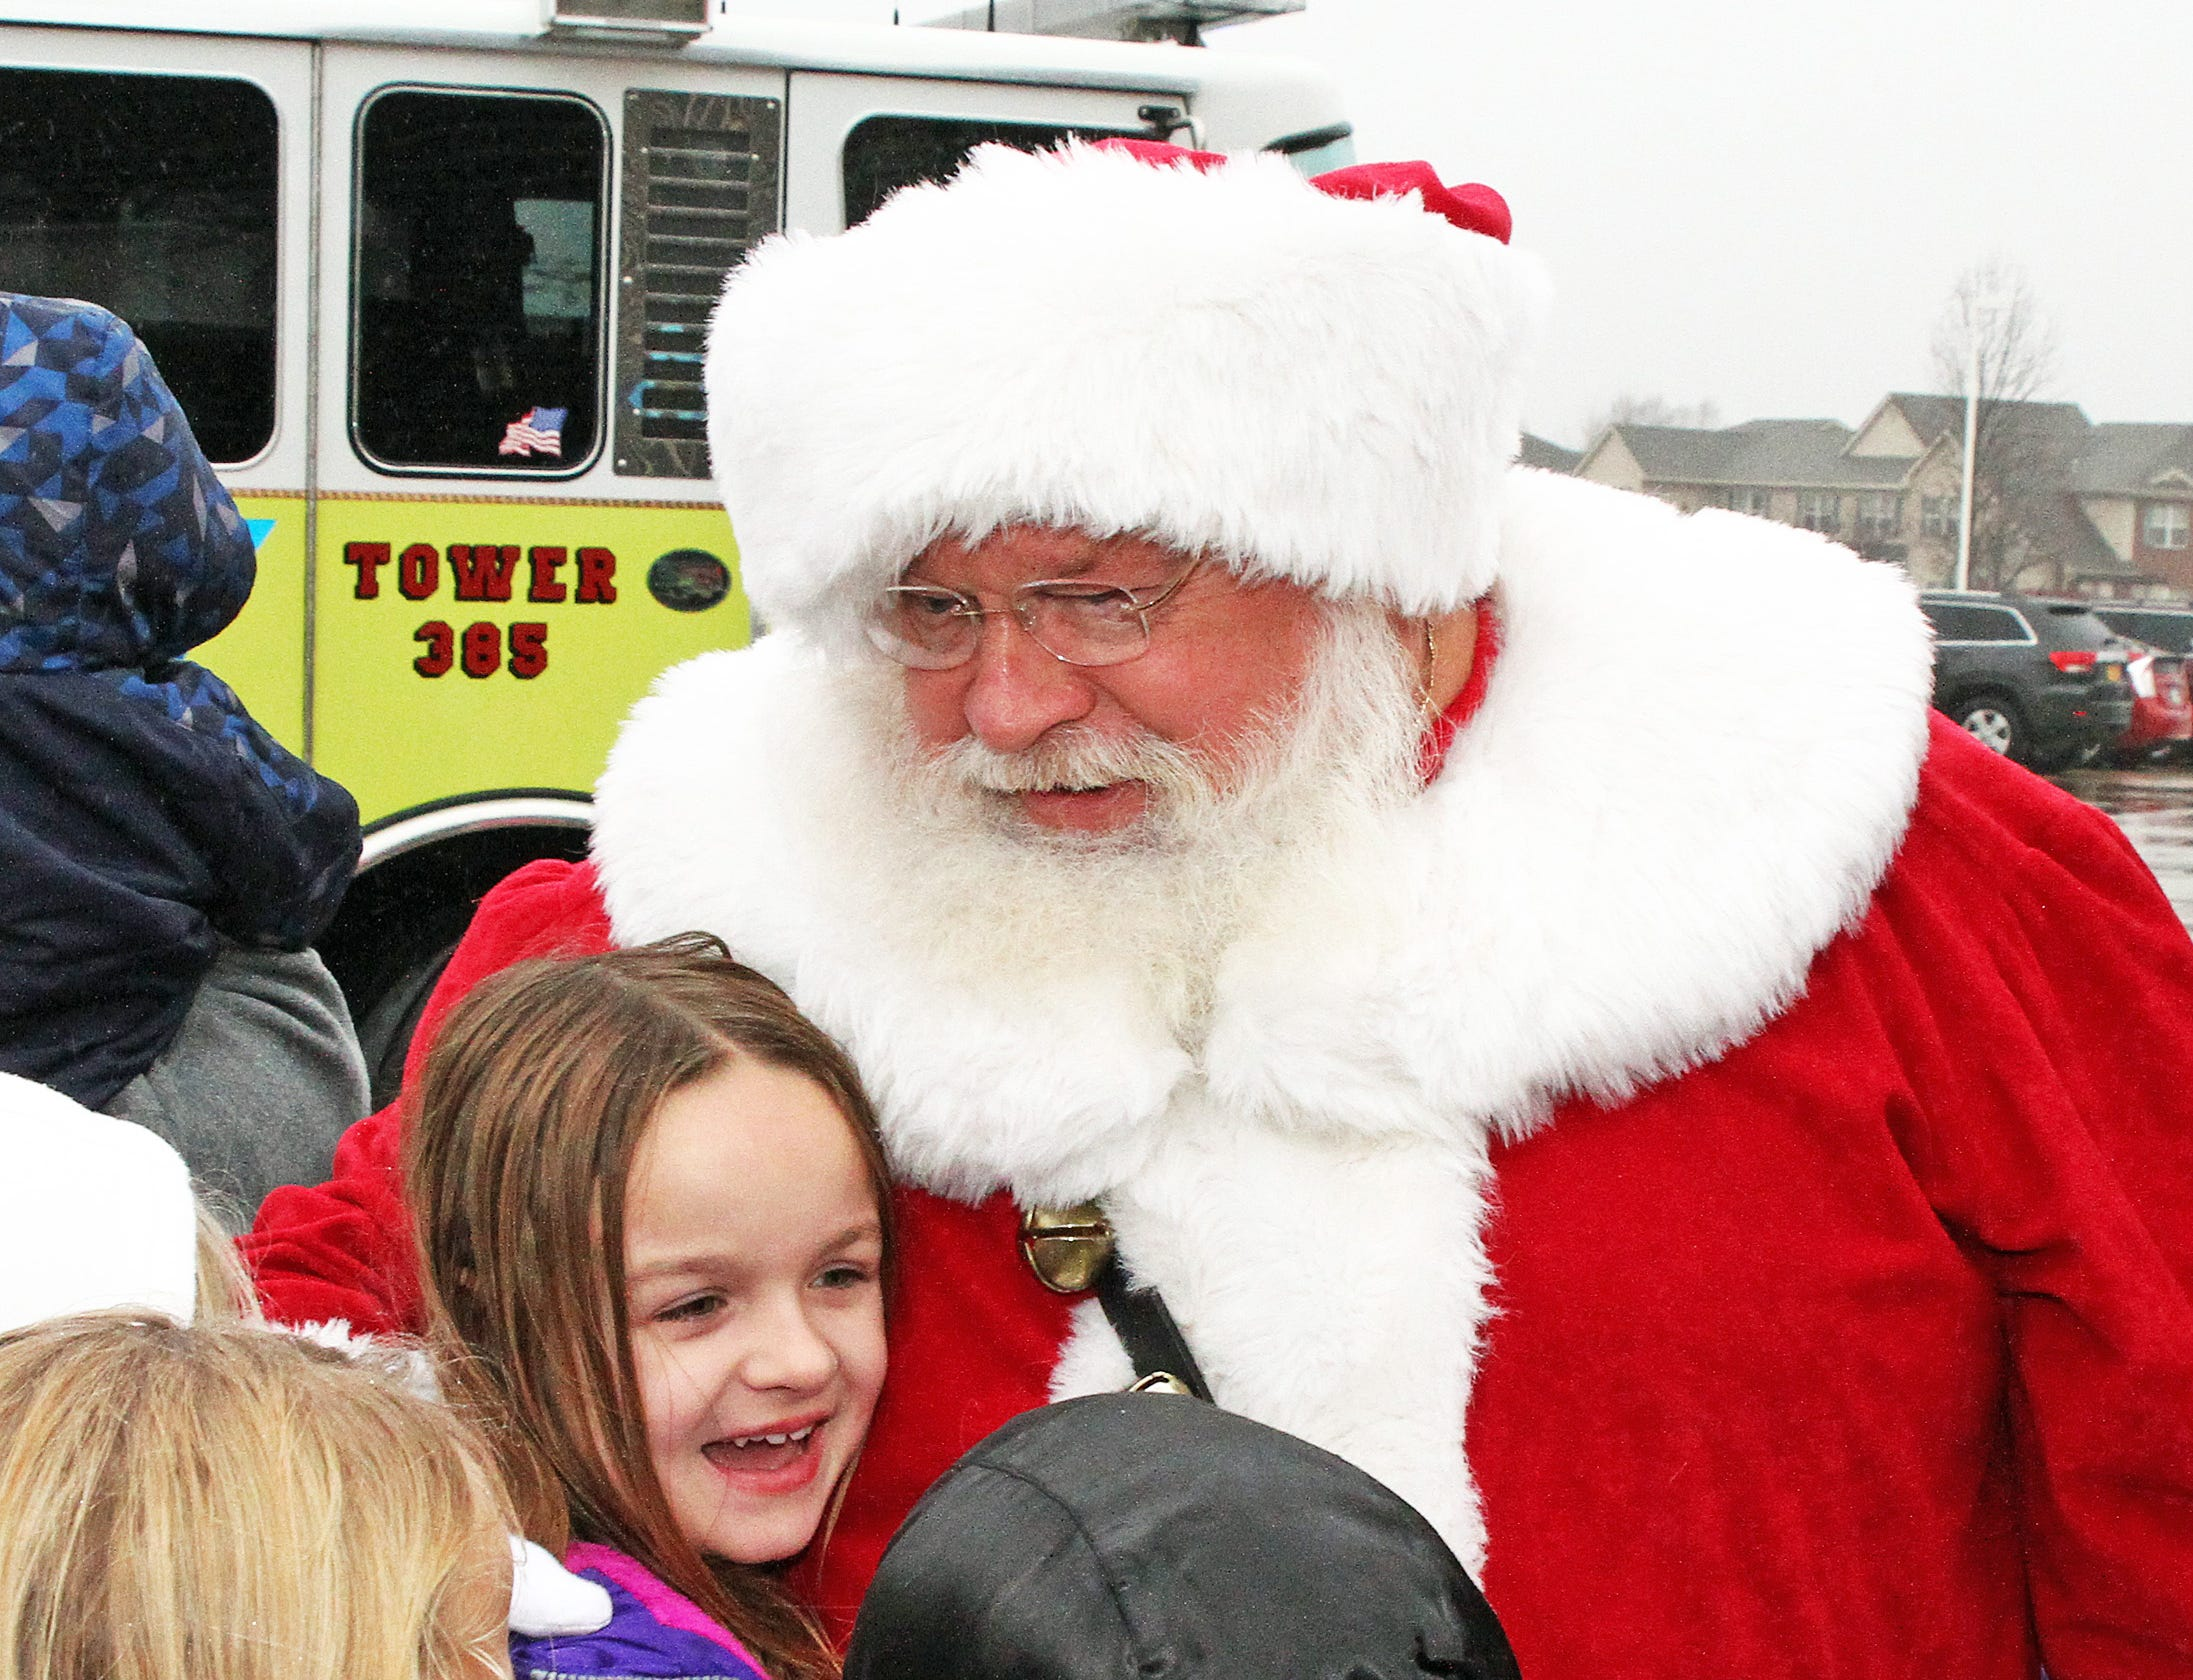 Santa greets the children as he arrives by fire truck during Holidays in Johnston on Saturday, Dec. 1, 2018 at the Johnston Public Library featuring a gingerbread house contest, cookie decorating, holiday music performed by the Johnston Middle School Ninth Grade Chamber Choir and story and craft time.